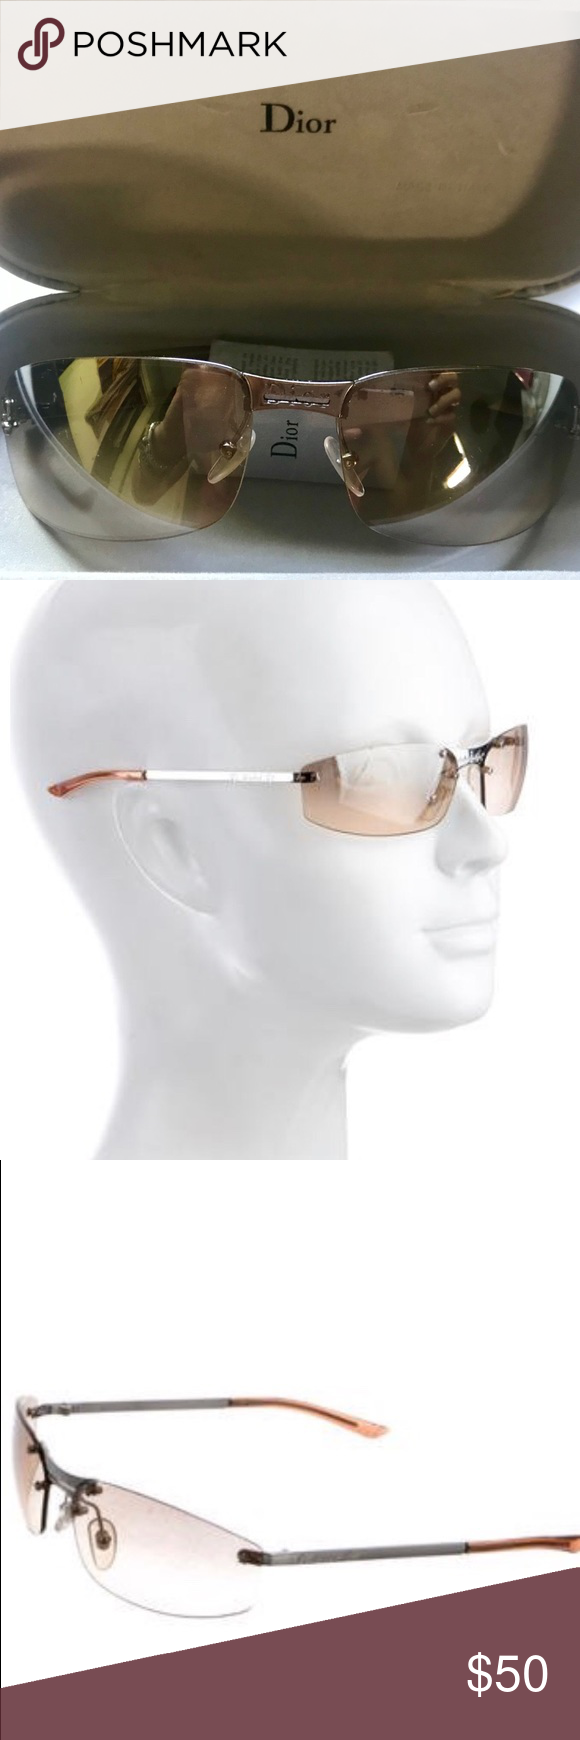 ef48398bddb0 Authentic Christian Dior minipop sunglasses Vintage CD... These Christian  Dior sunglasses have been loved... But they are Dior! Frames and lenses  show ...